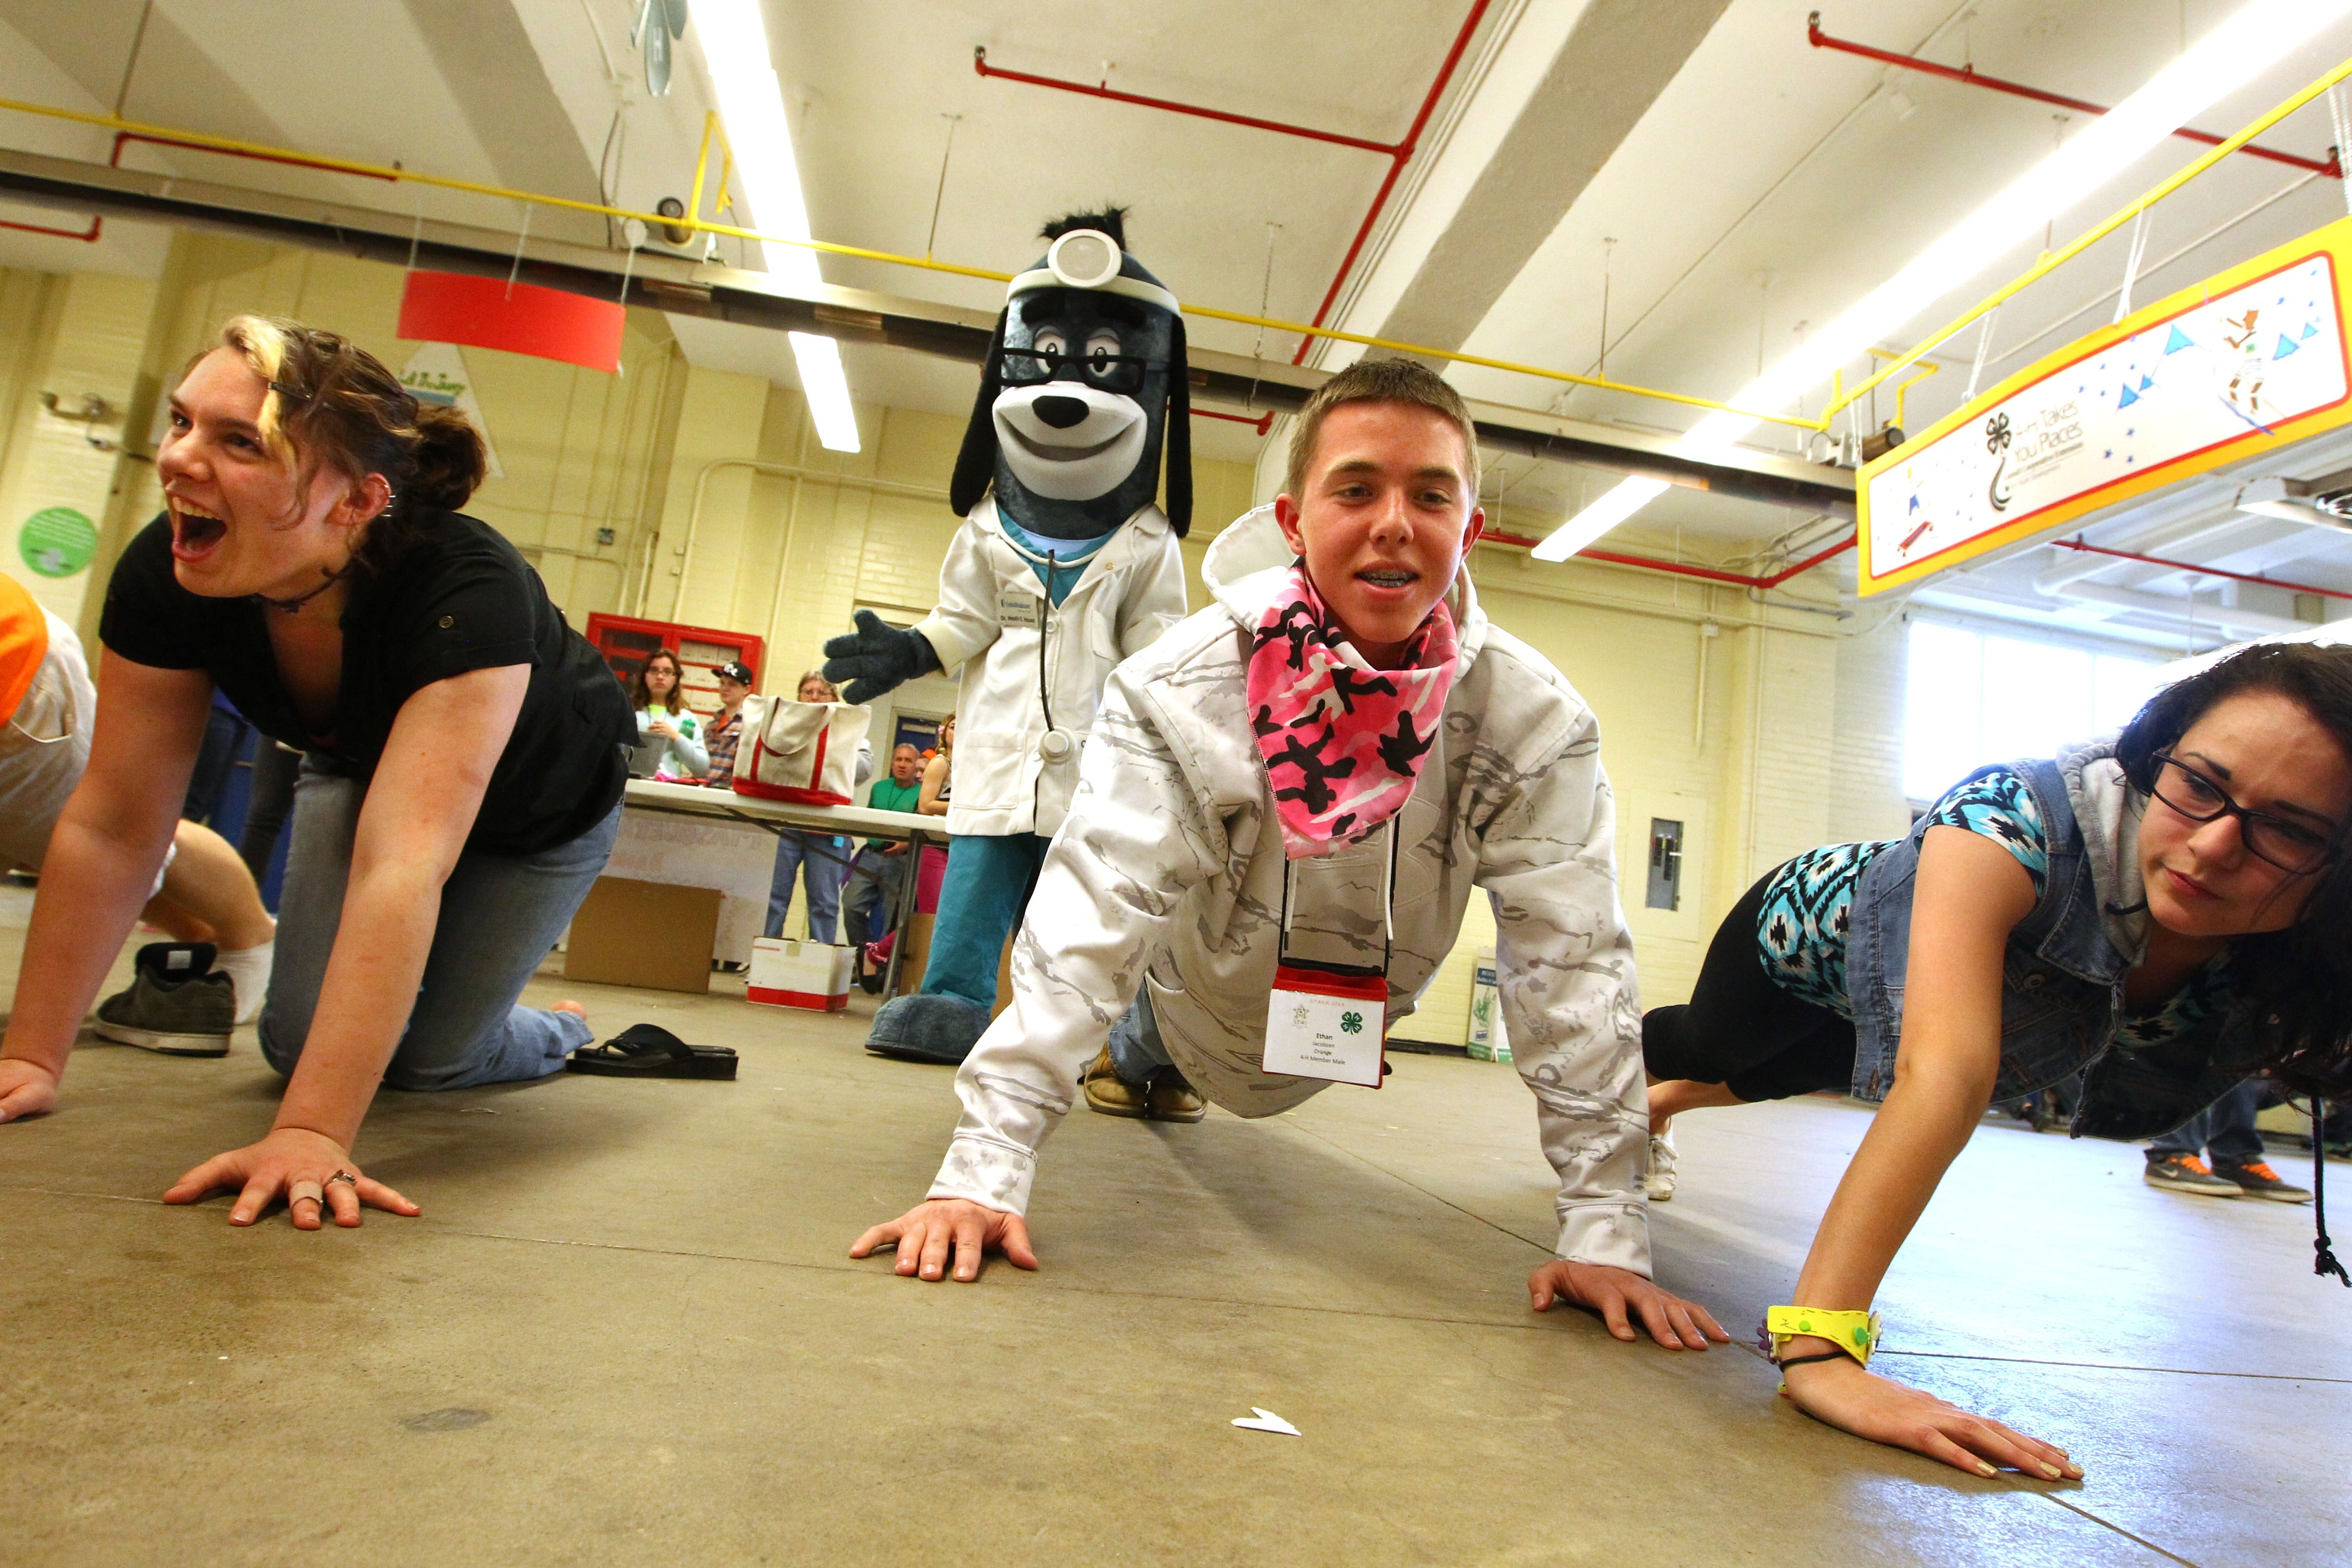 """UnitedHealthcare mascot Dr. Health E. Hound watches Ethan Jacobsen, of Newburgh, N.Y., Orange County, do push-ups. He was participating in interactive stations based on the """"Choose Health: Food, Fun, and Fitness"""" curriculum created in the Division of Nutritional Sciences at Cornell University. Youth also had the opportunity to make their own healthy smoothies with renewable energy bikes equipped with specially installed pedal-powered blenders at the New York State Fairgrounds in Syracuse, N.Y., on Saturday, April 12, 2014. (Photos by Michael J. Okoniewski)"""